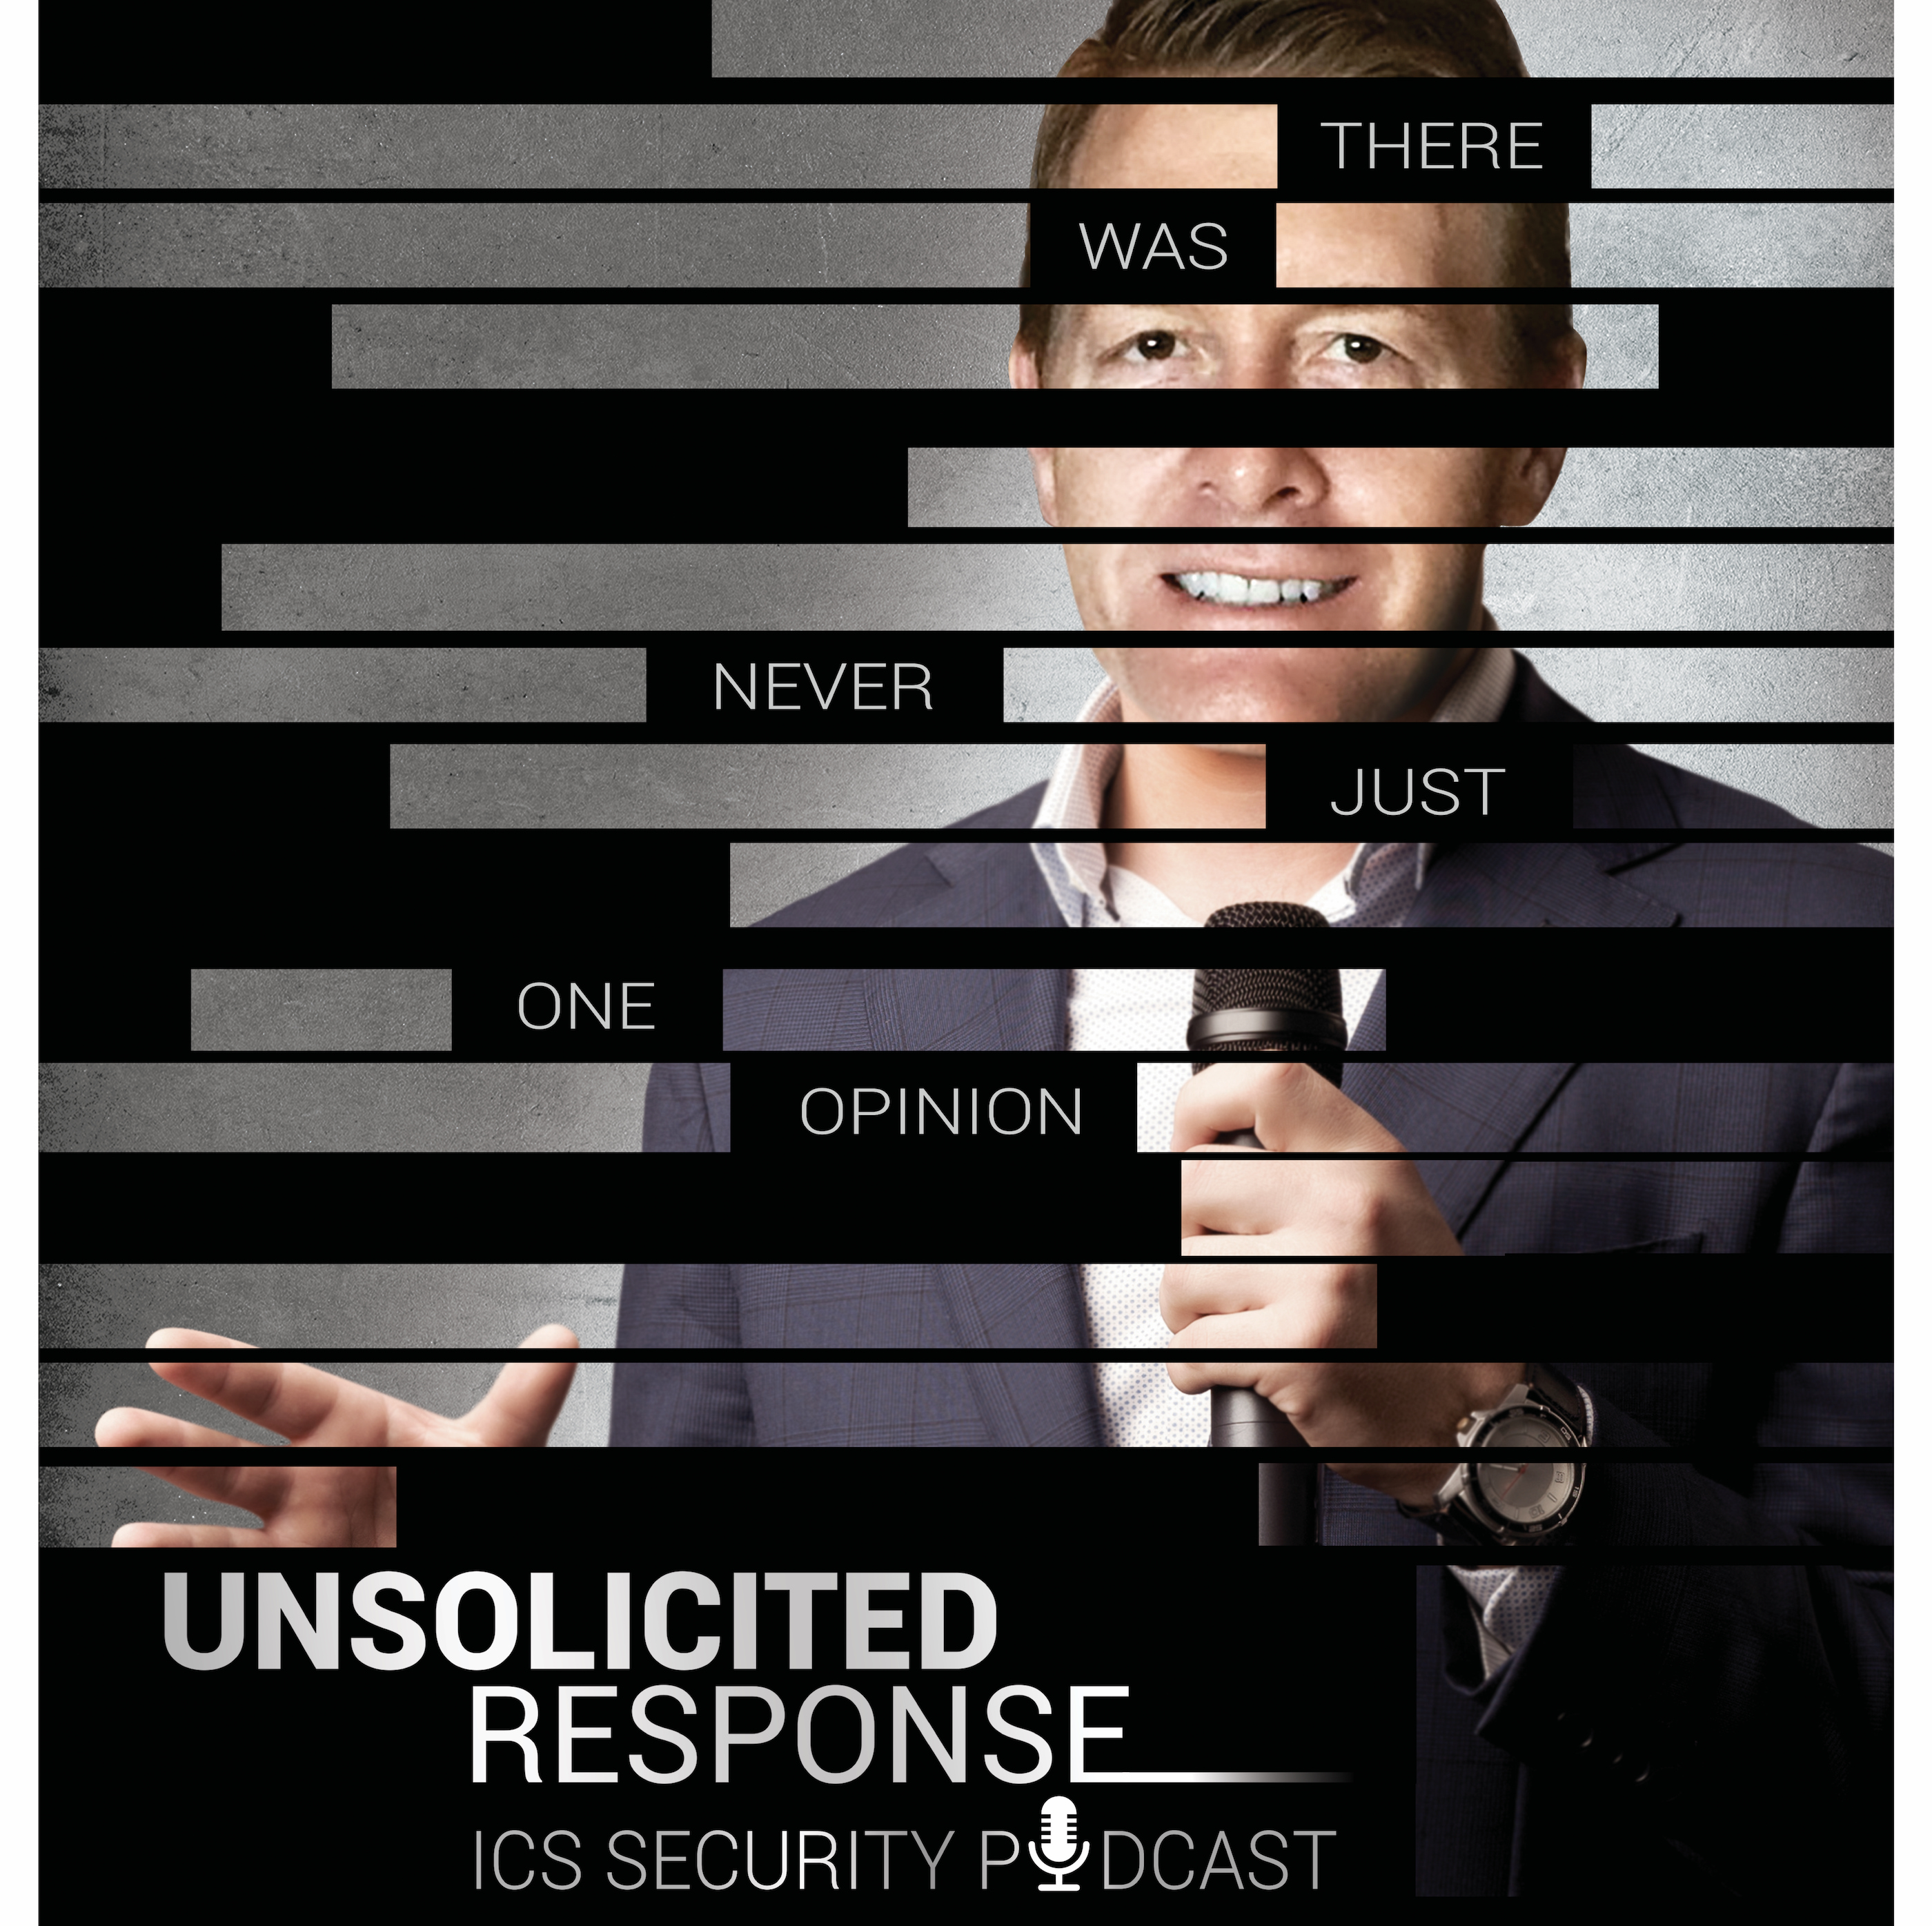 Unsolicited Response Podcast on Apple Podcasts